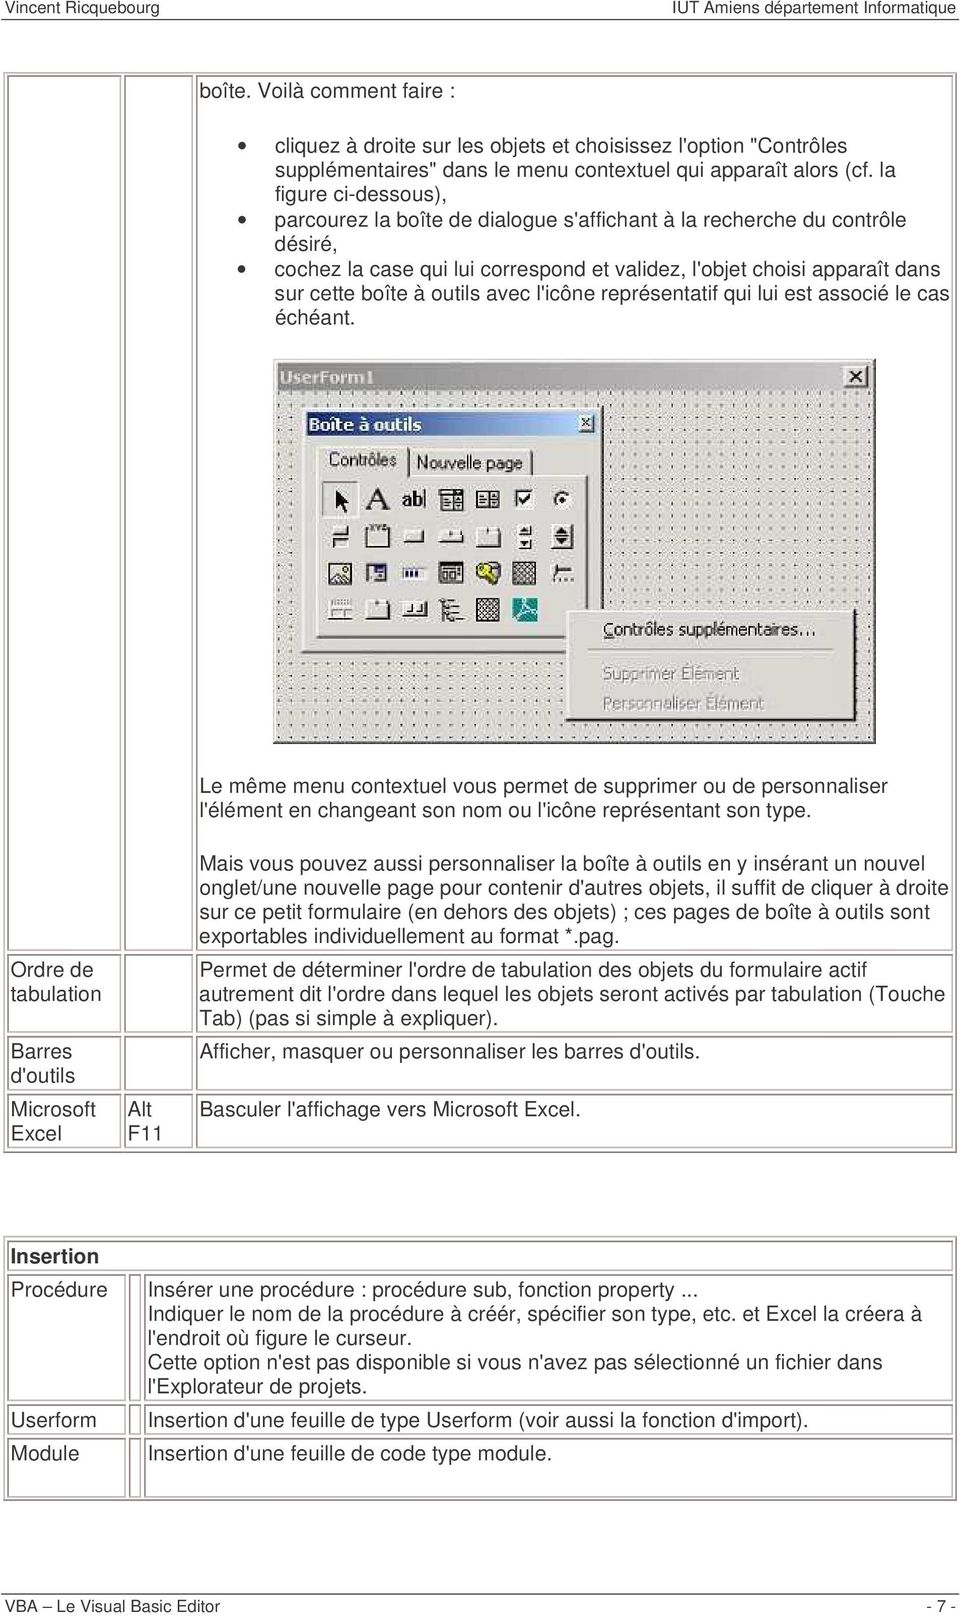 itextsharp image to pdf visual basic